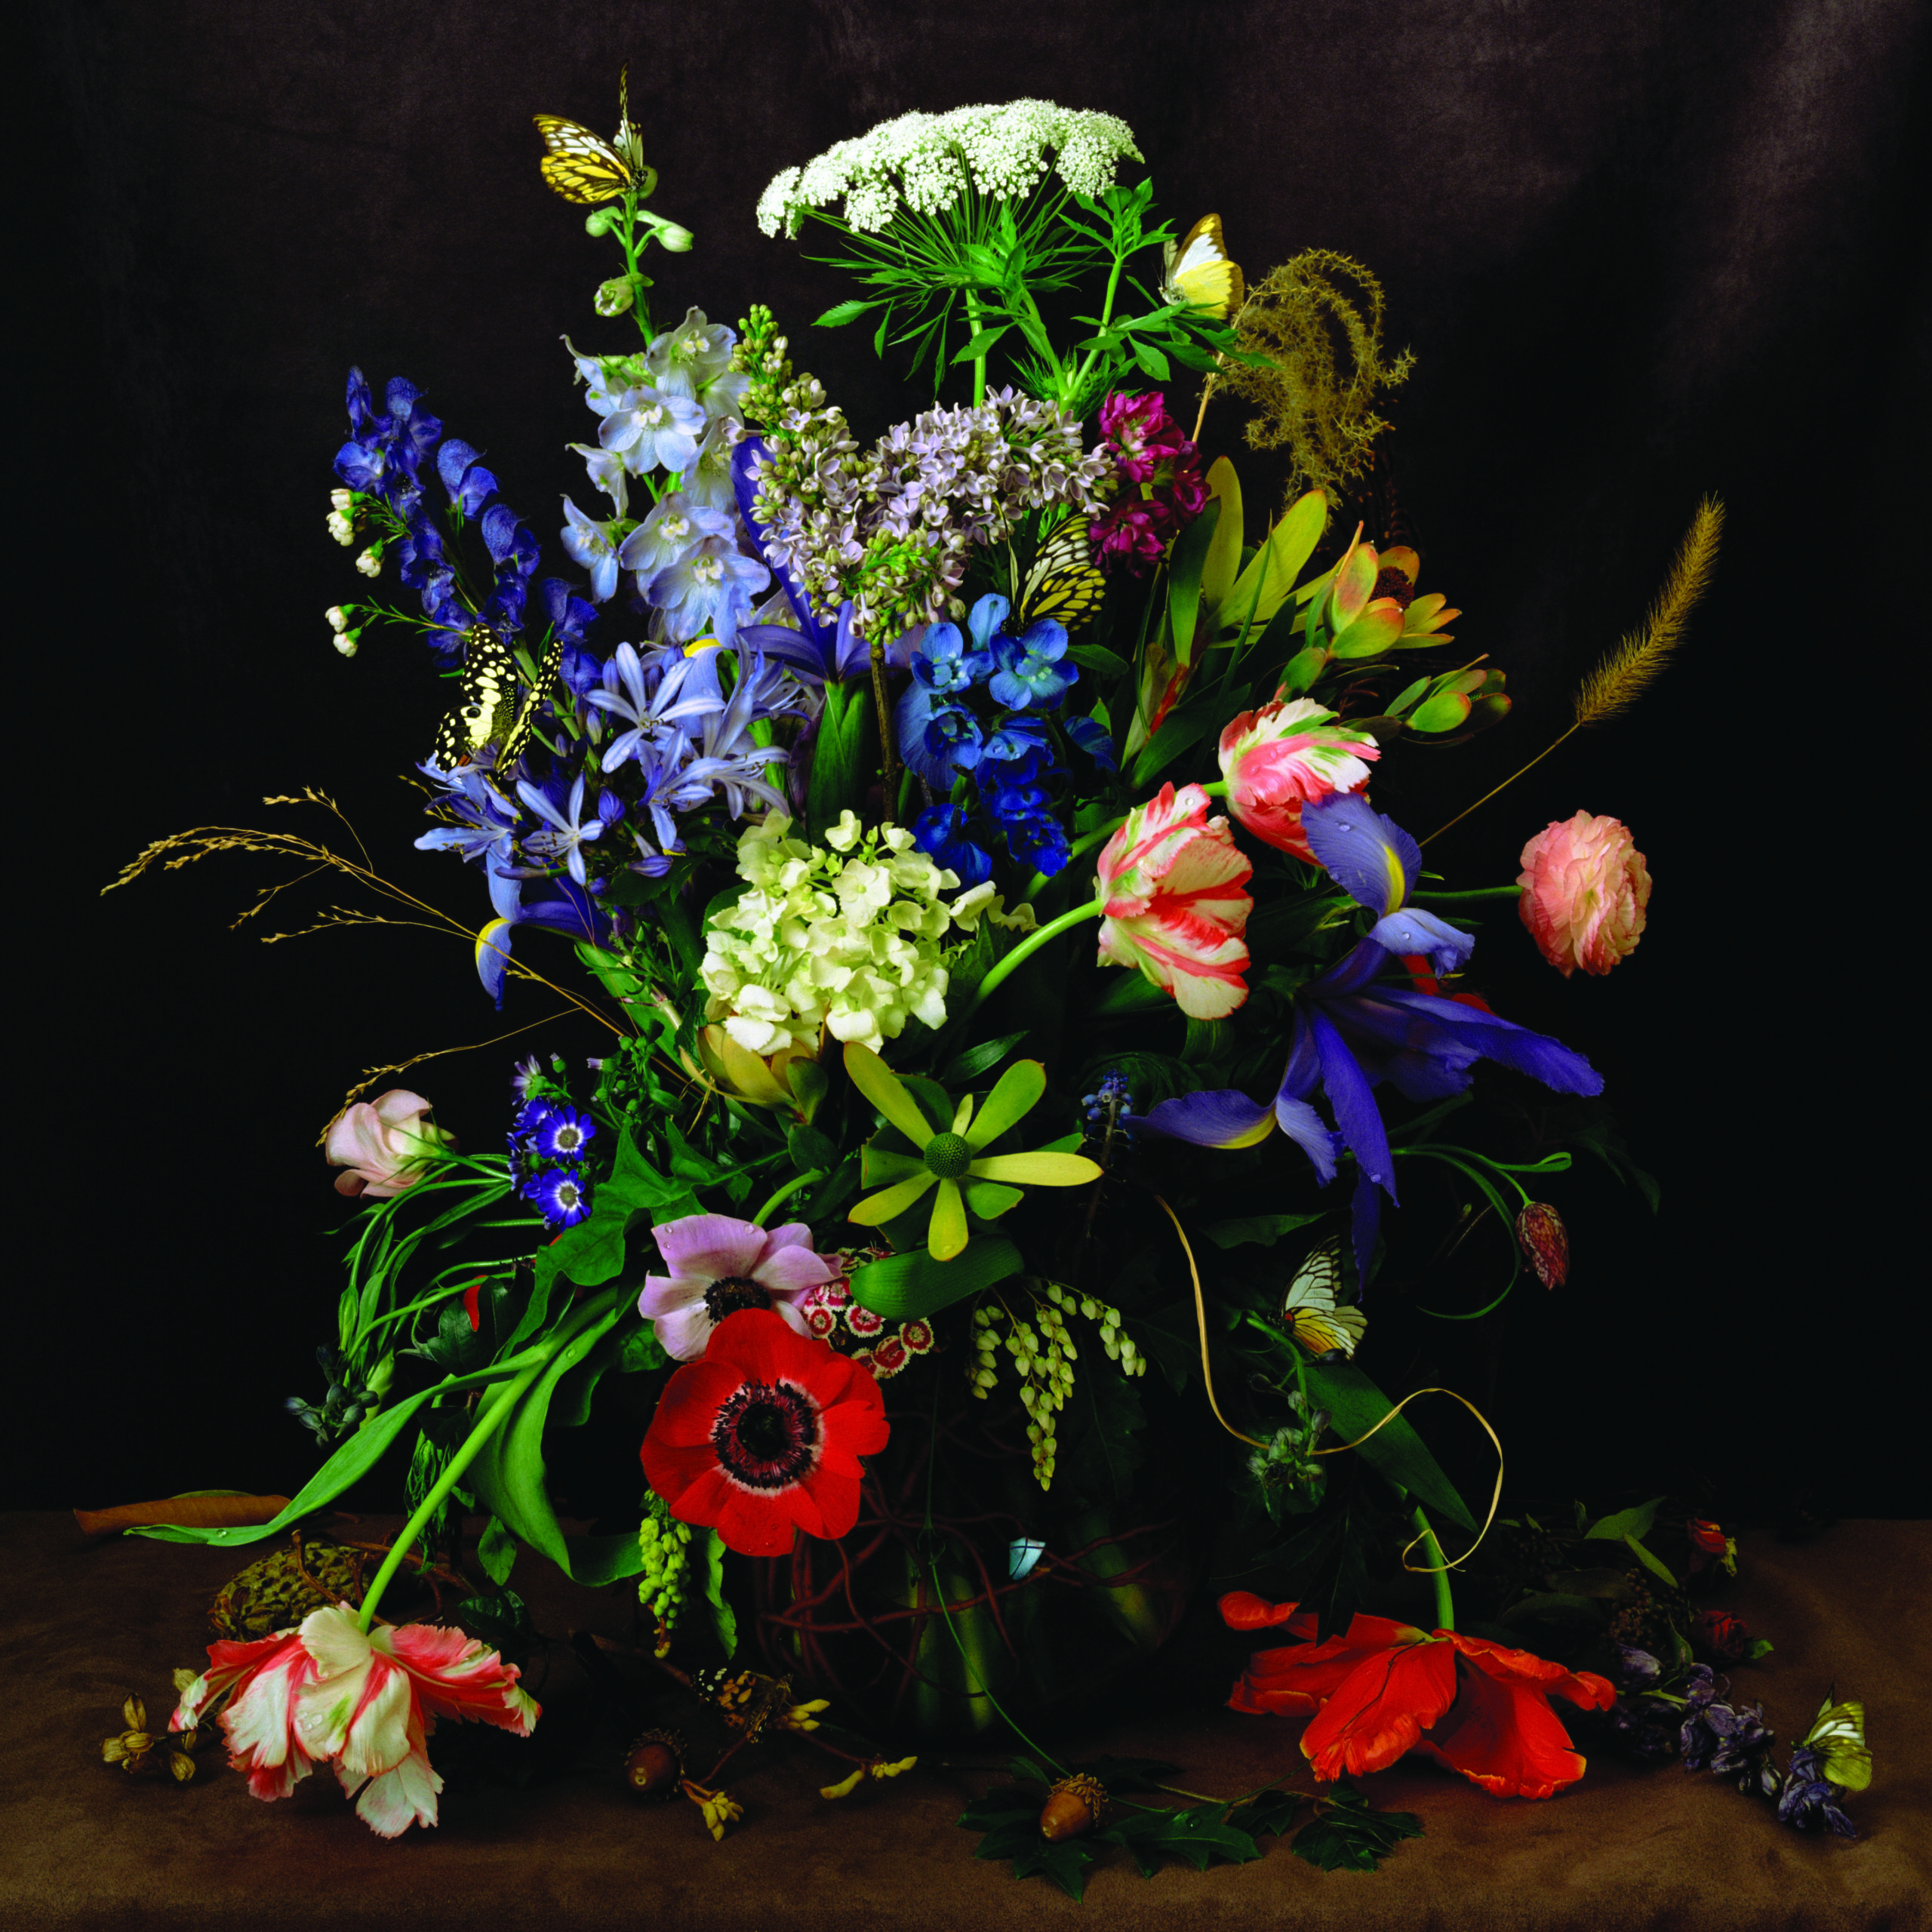 A colorful portrait of a lush arrangement of flowers including poppies, peonies, roses, carnations, and more. Some flowers have small water drpolets on them and a butterfly and bee are perched on others. The image is a still life photograph, though it looks like a painting.